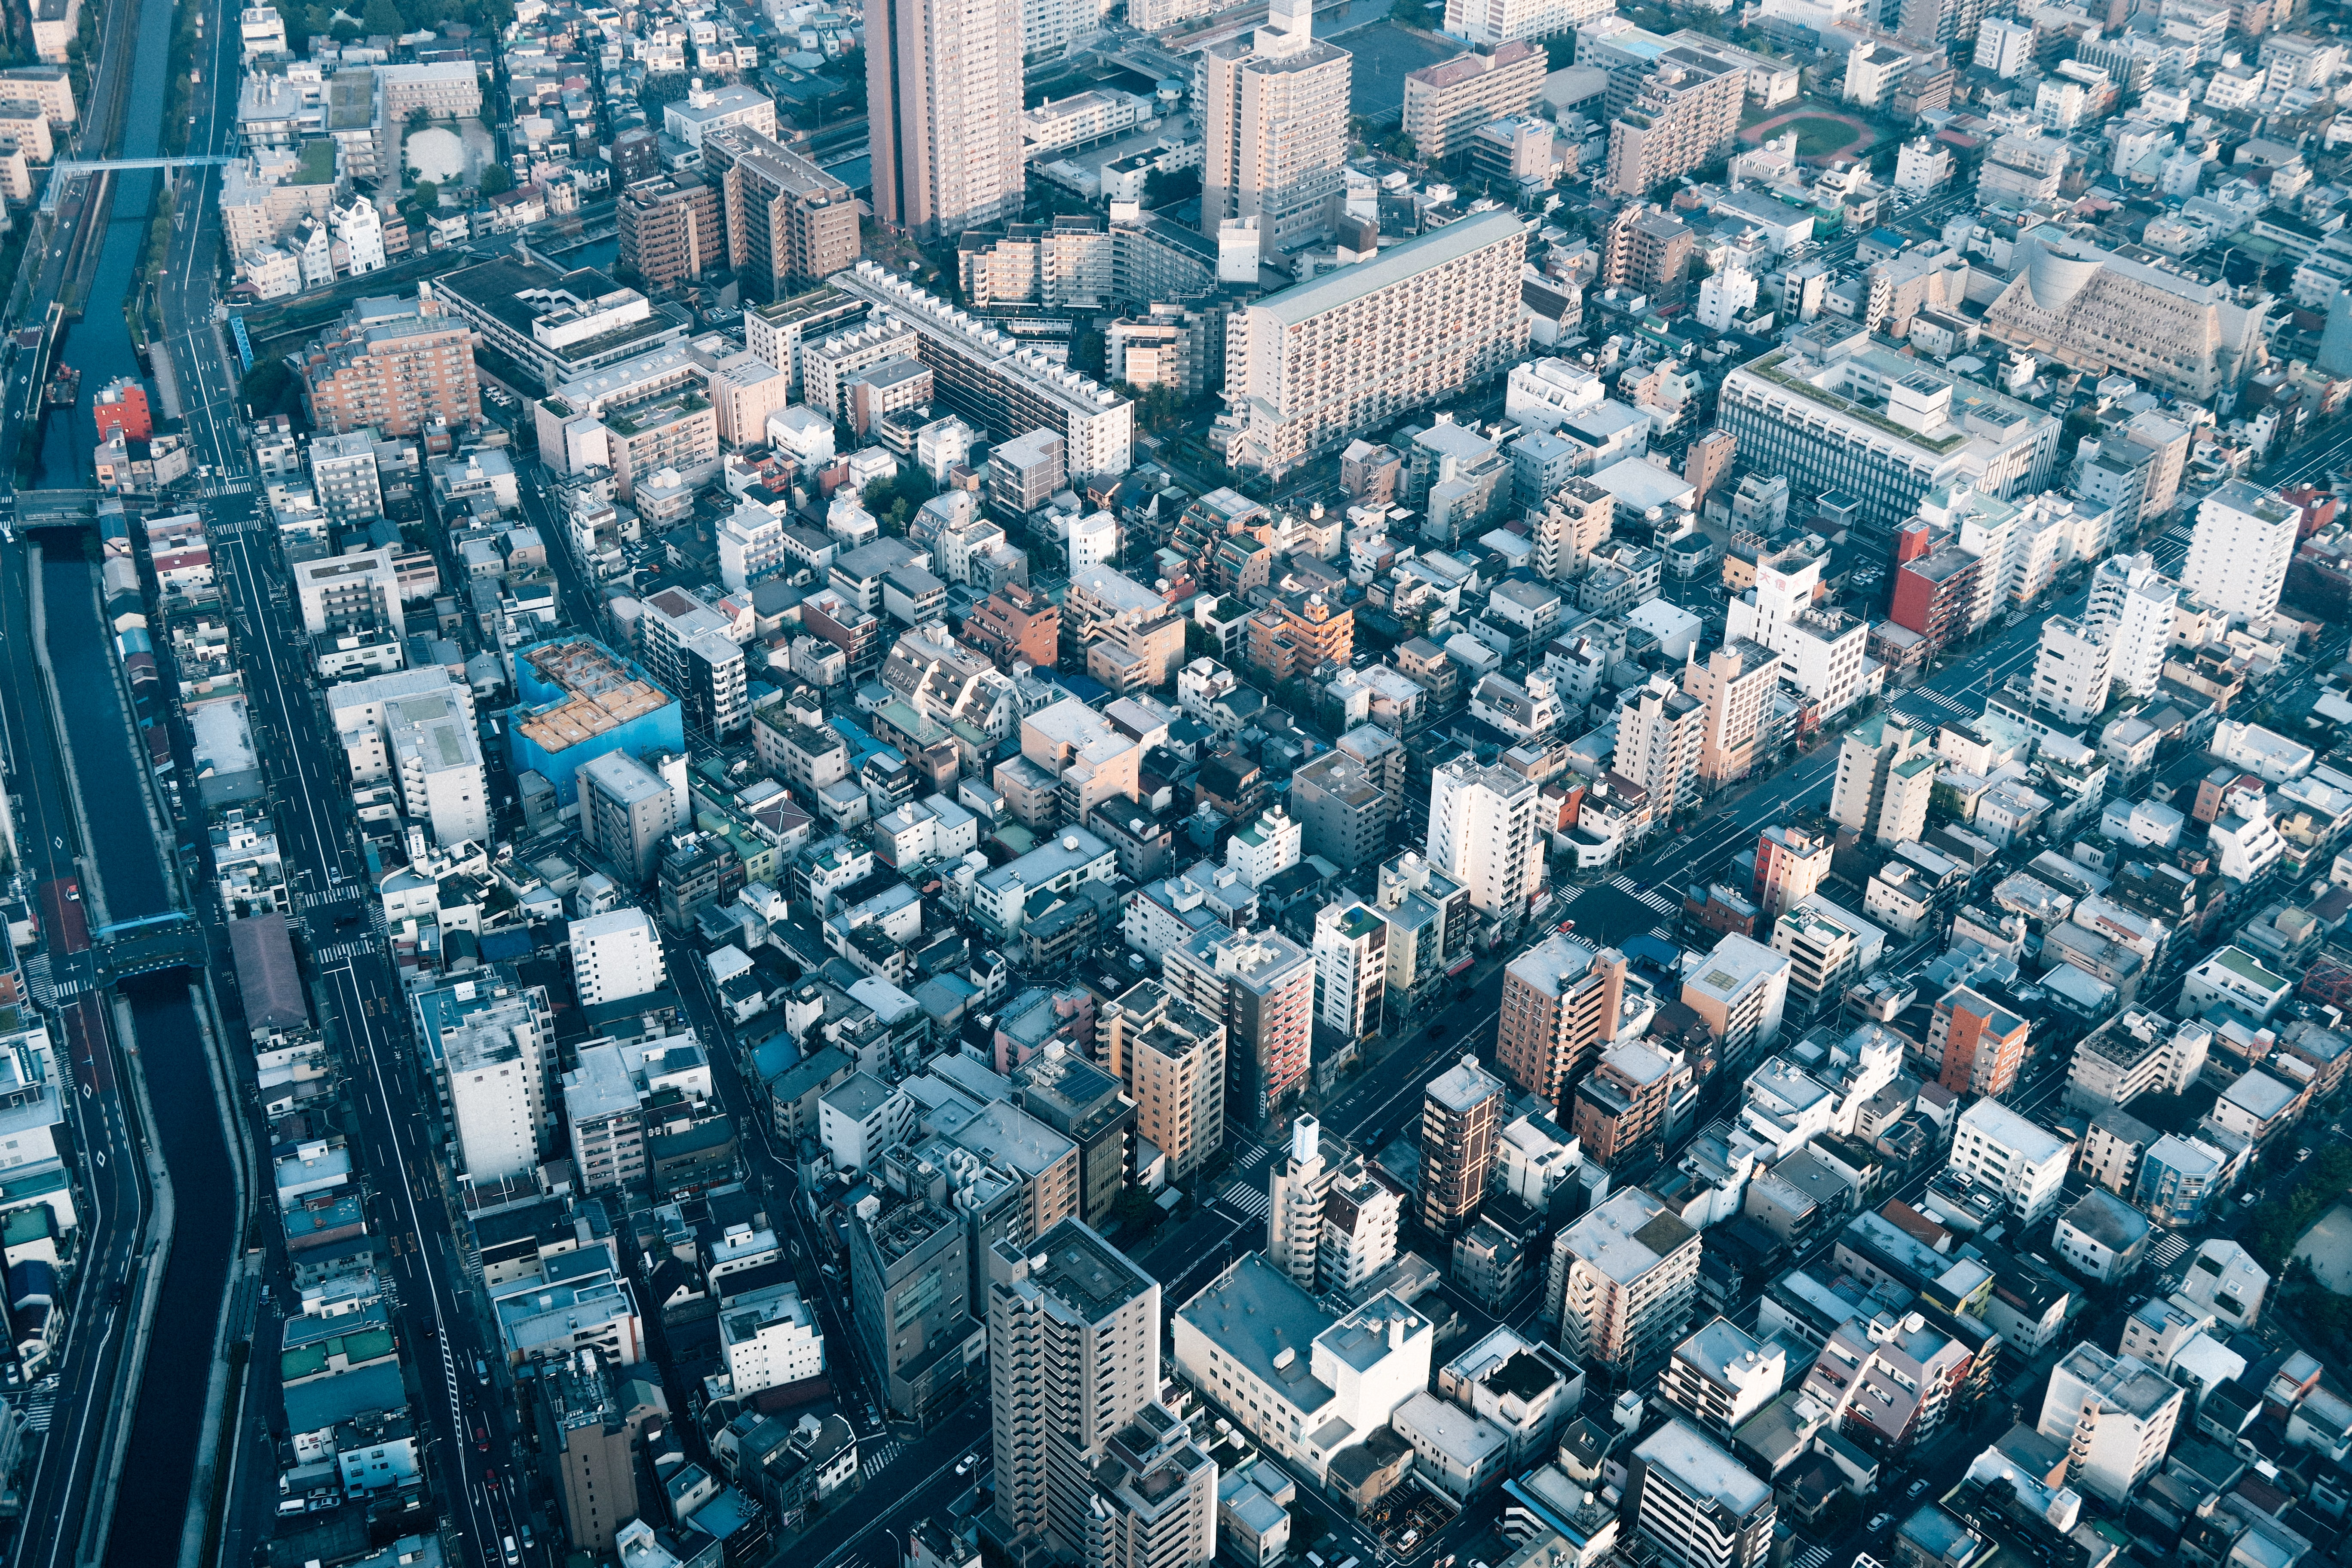 A drone shot of a residential district in Tokyo